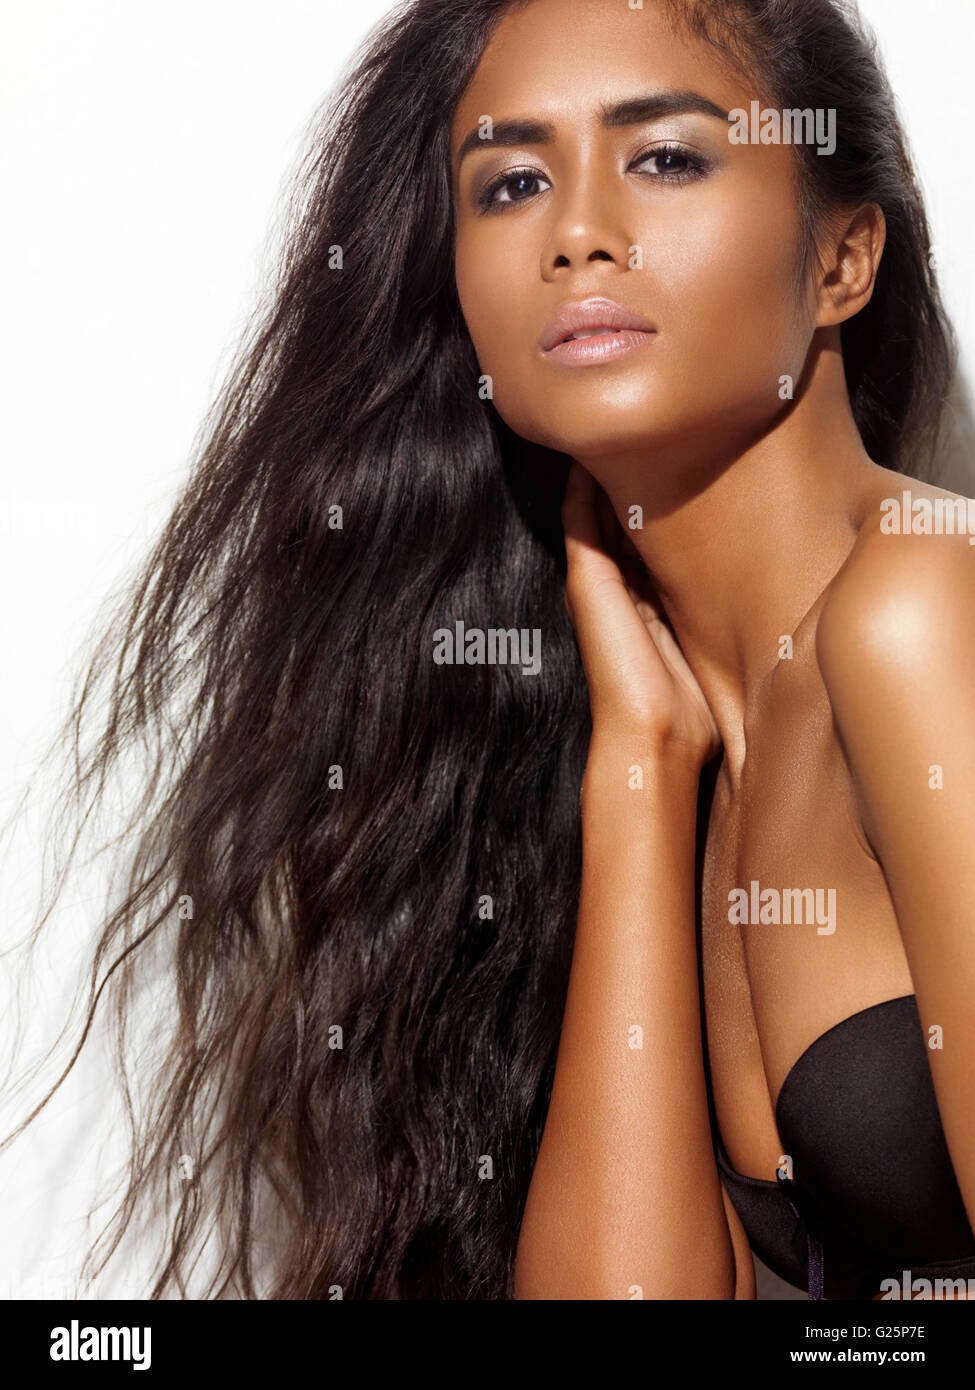 Young woman with long black hair wearing a black bra - Stock Image